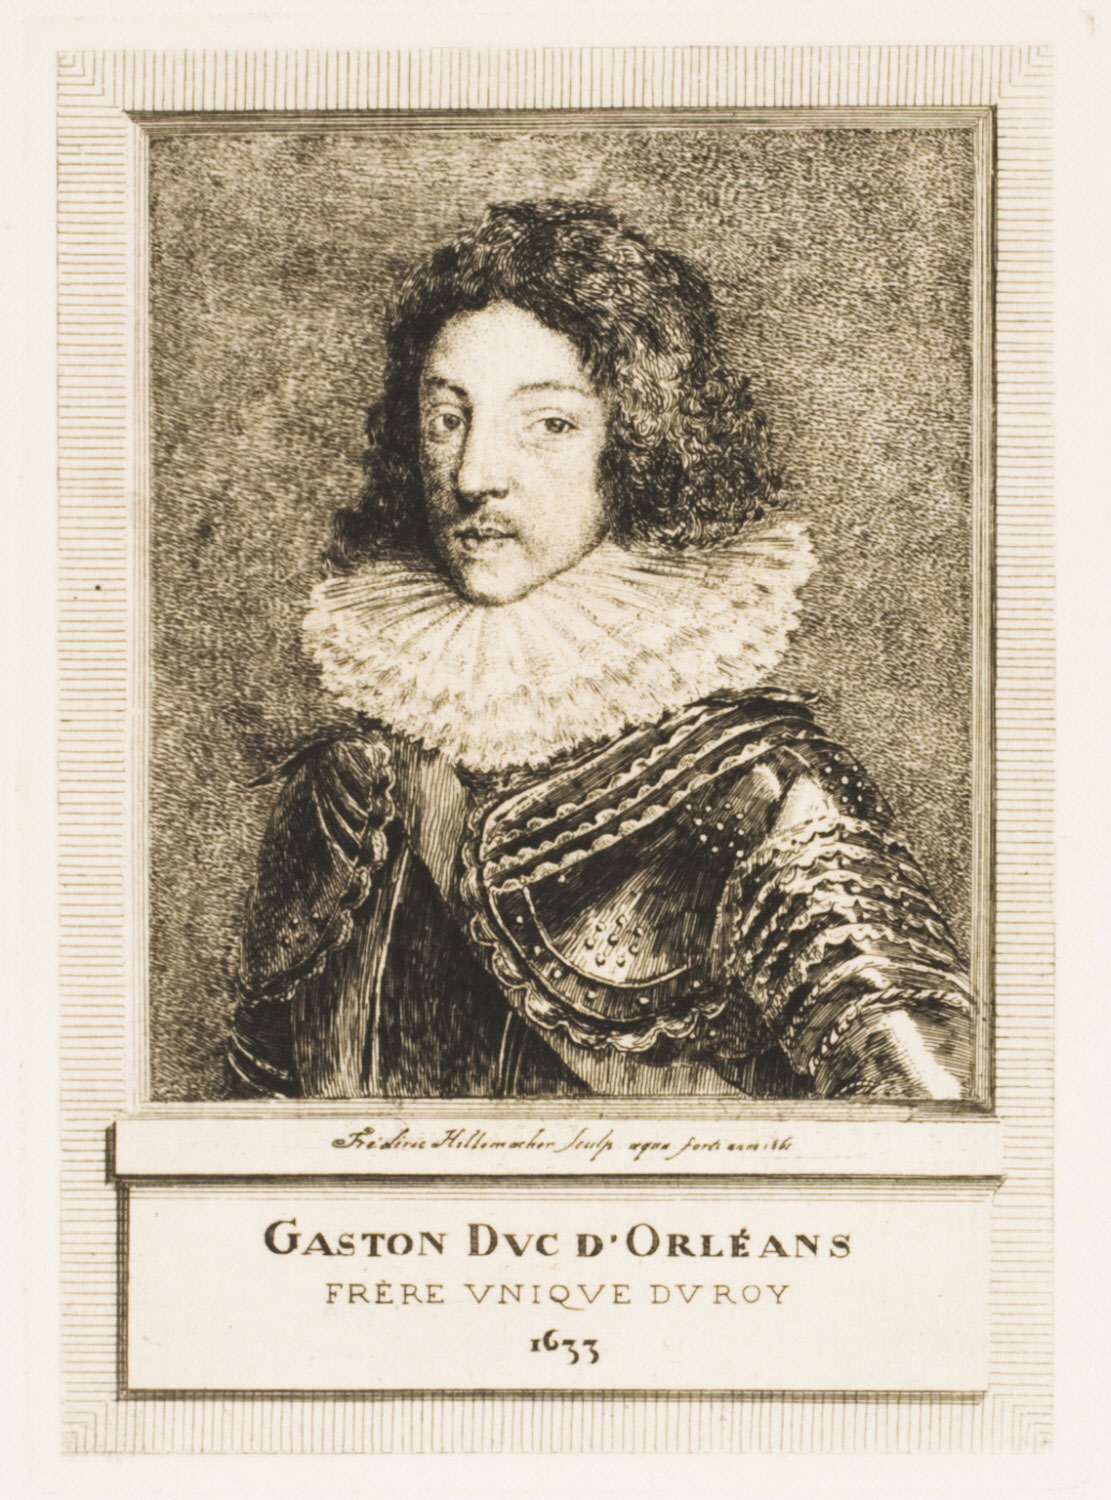 Gaston, Duc d'Orléans, the King's Only Brother, in 1633